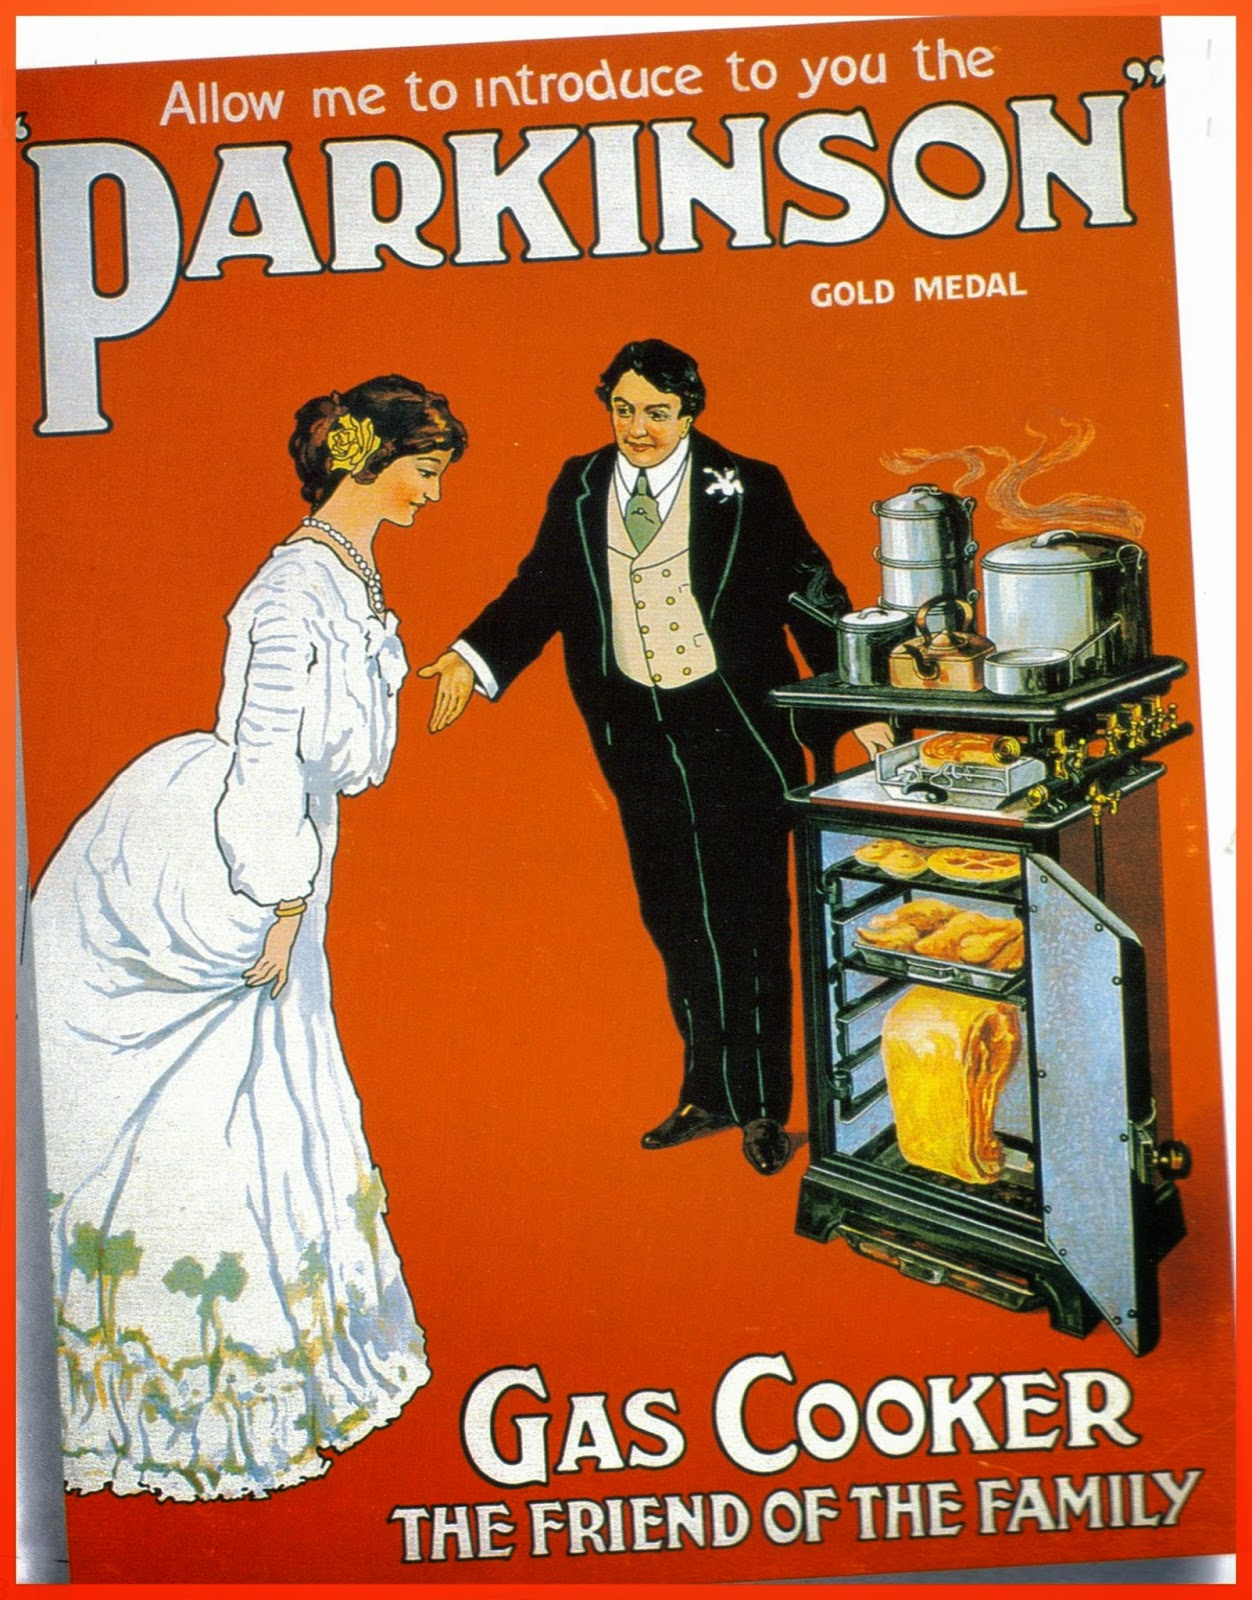 1910 Parkinson Gas Cooker